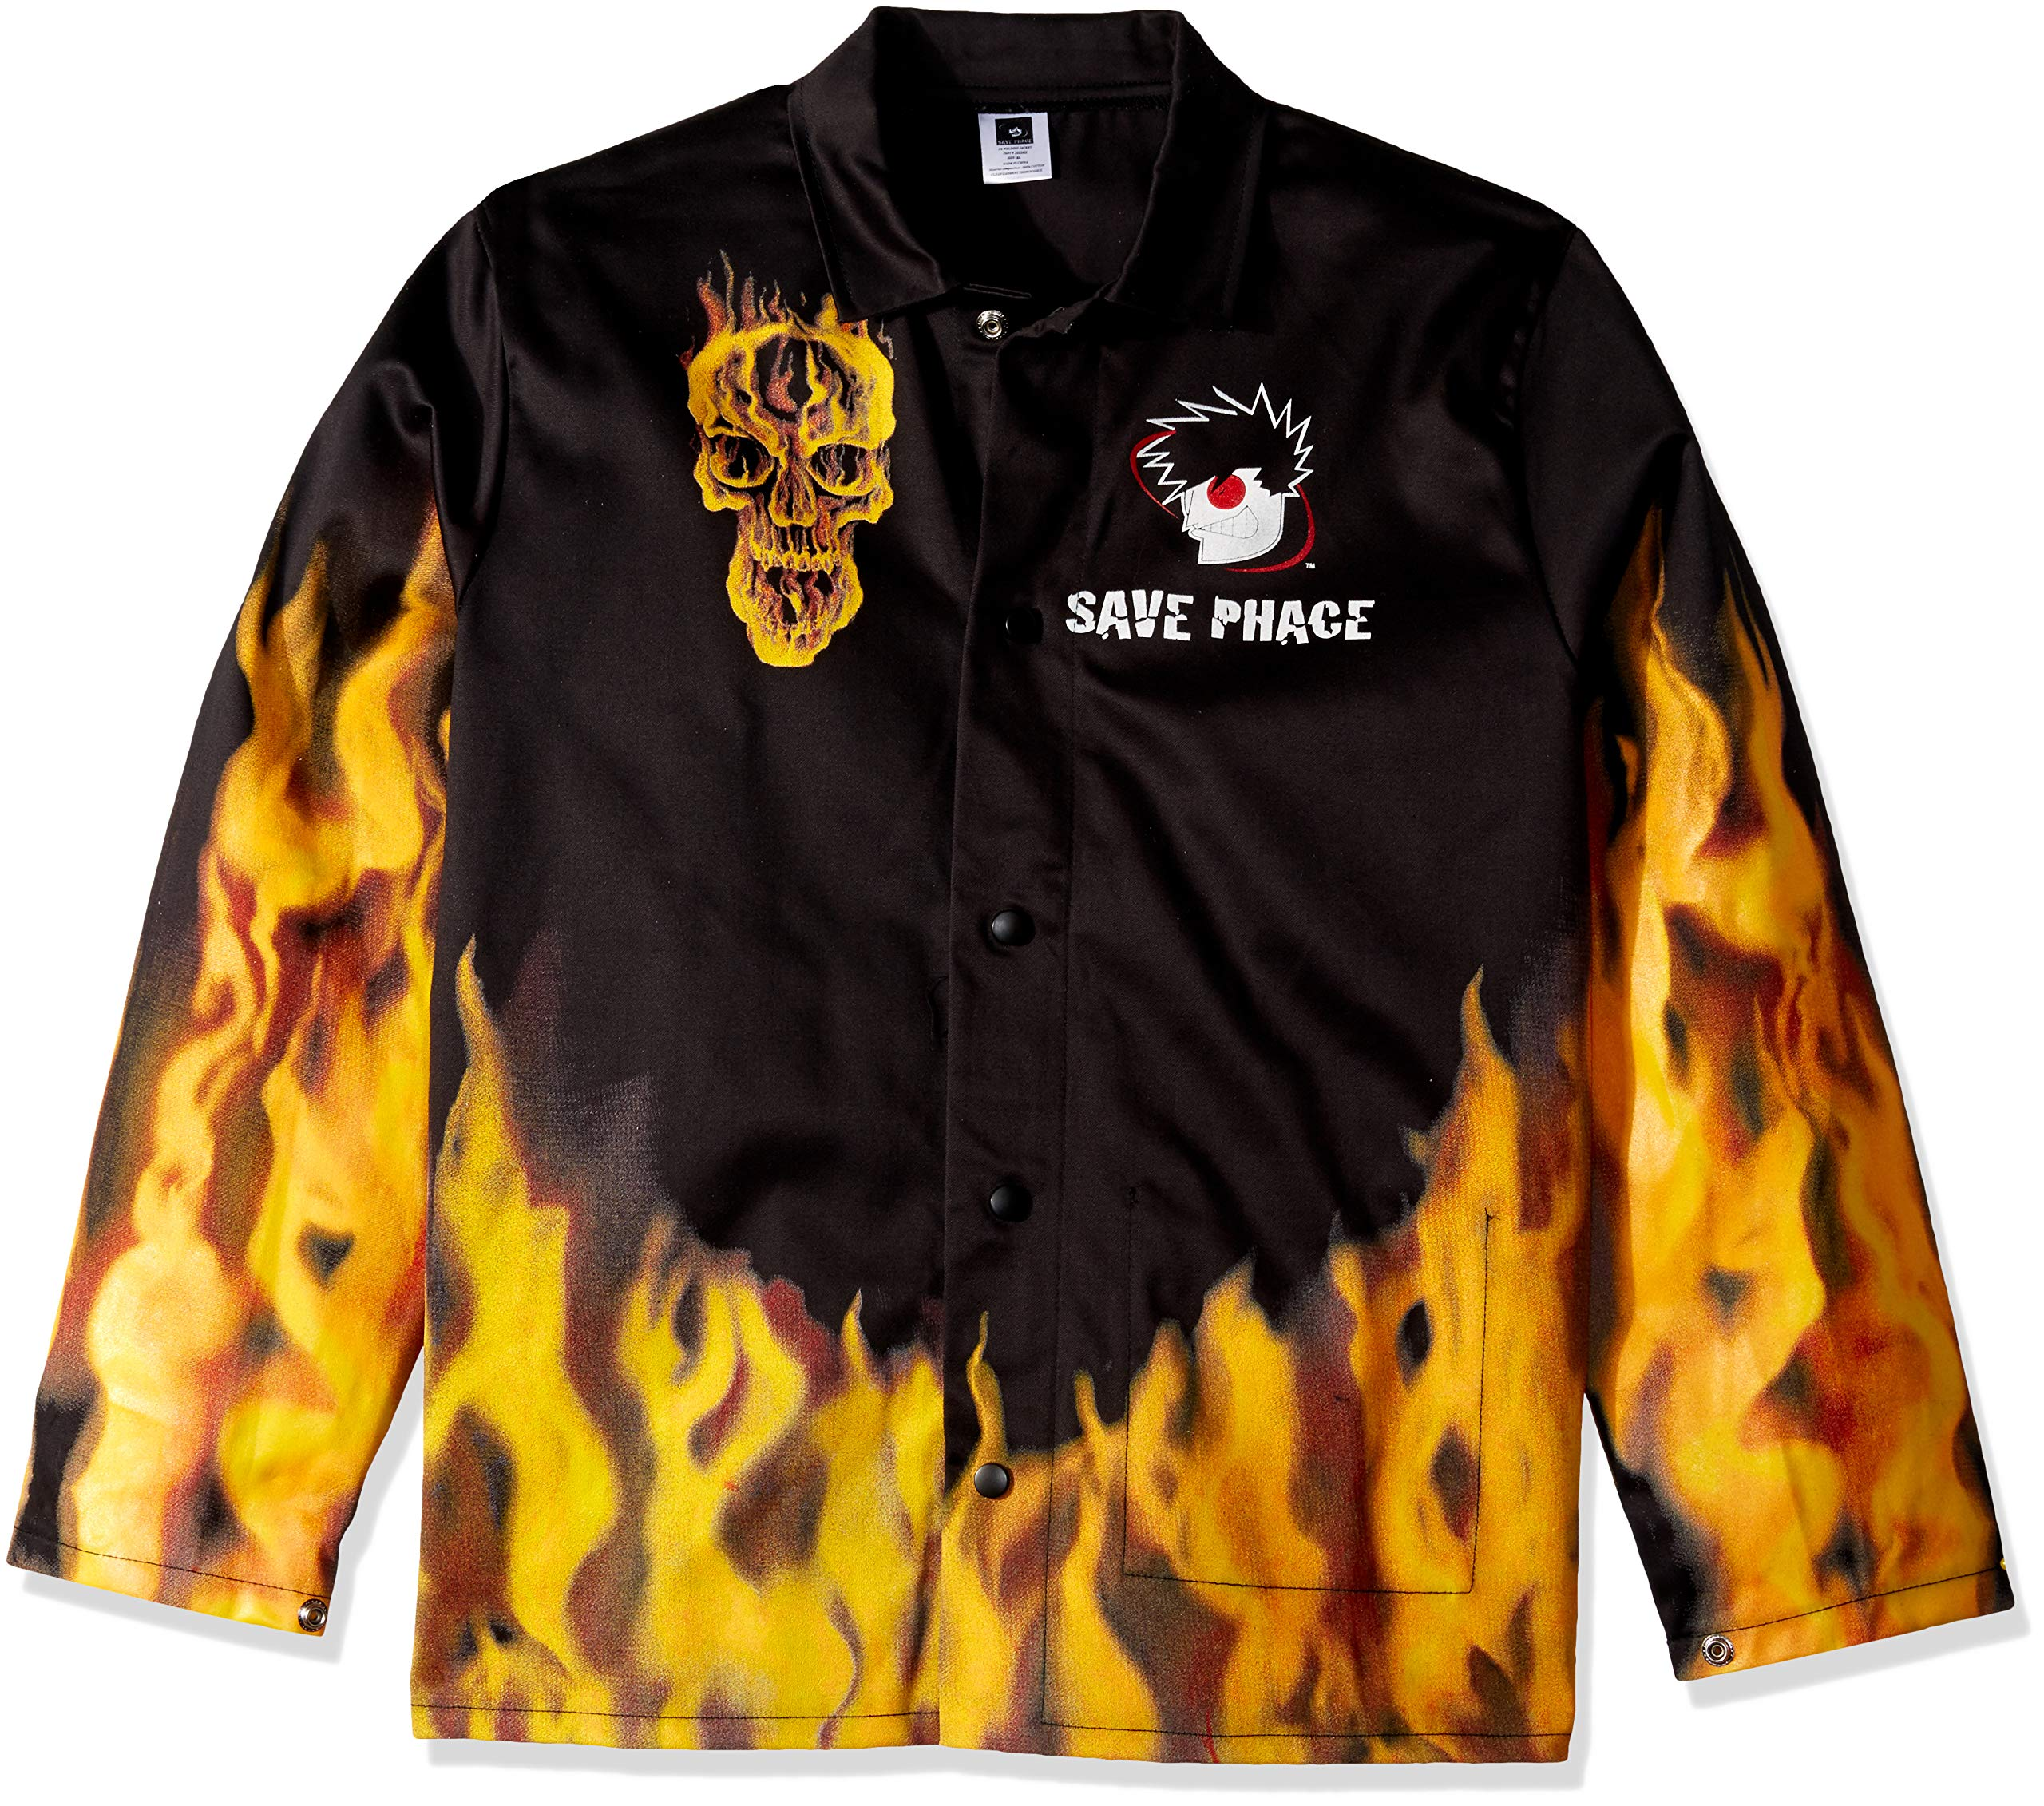 Save Phace 3012411 Welding Jacket Fired Up Graphic Pattern X-Large